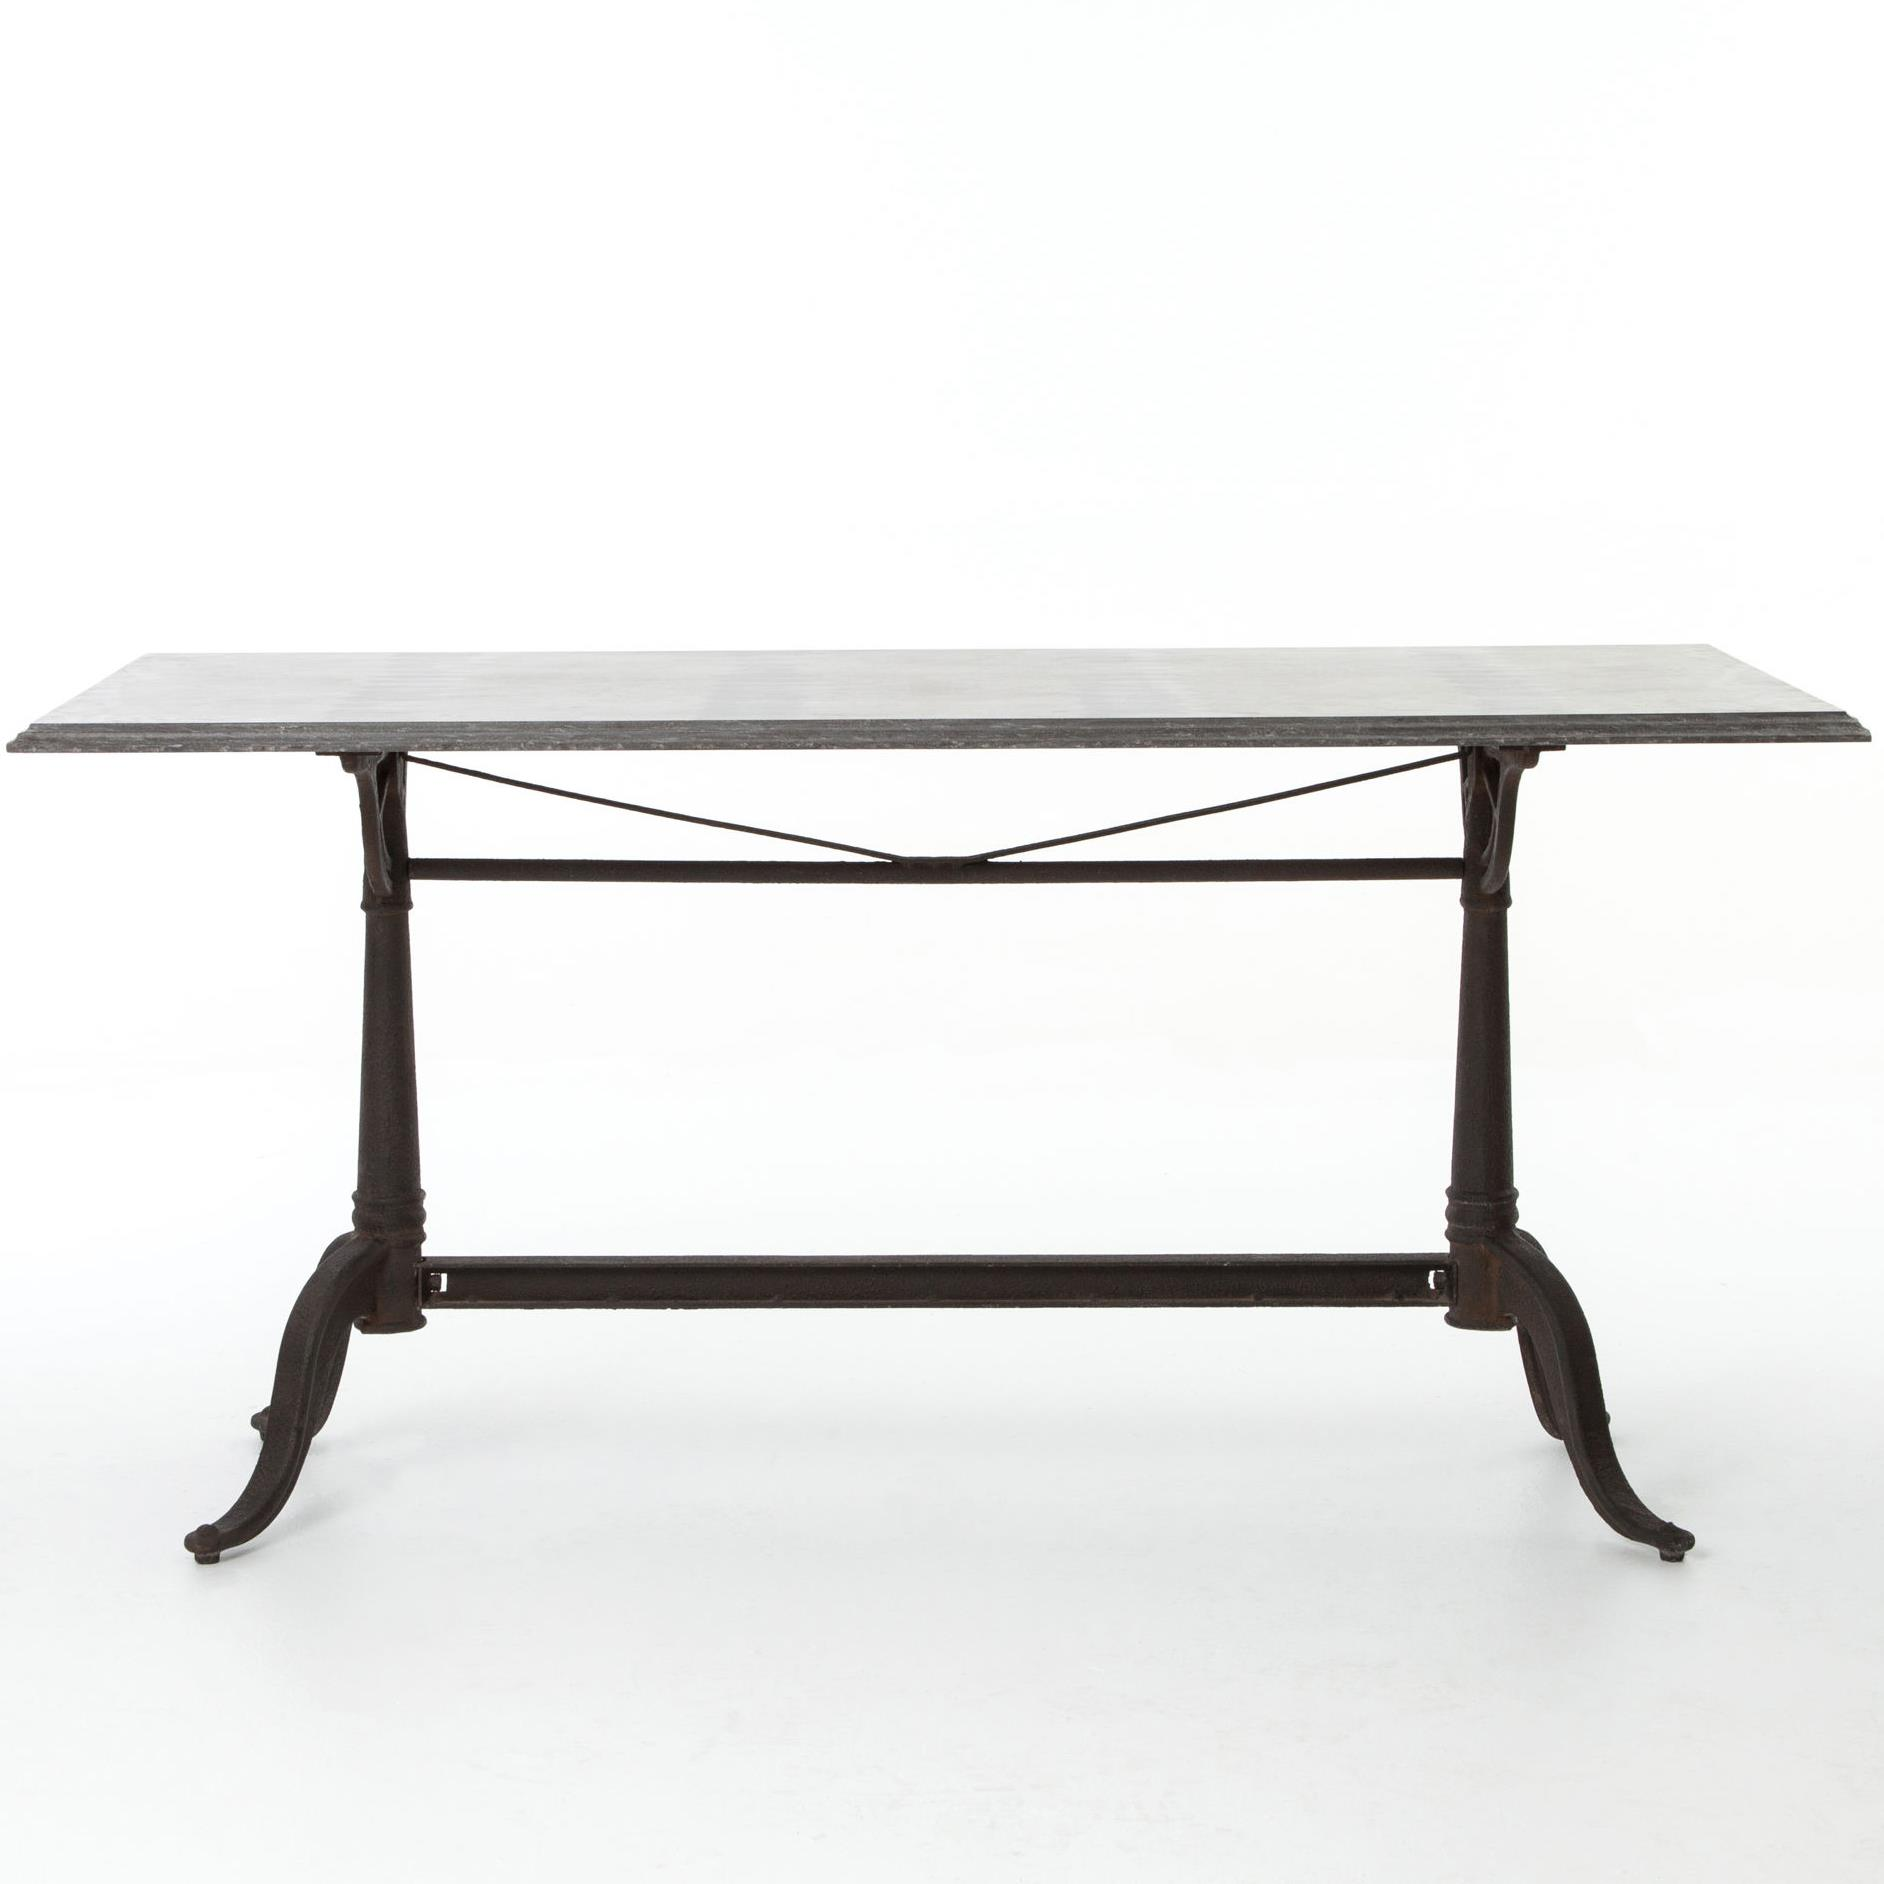 Parisian Dining Table with Bluestone Top by Four Hands